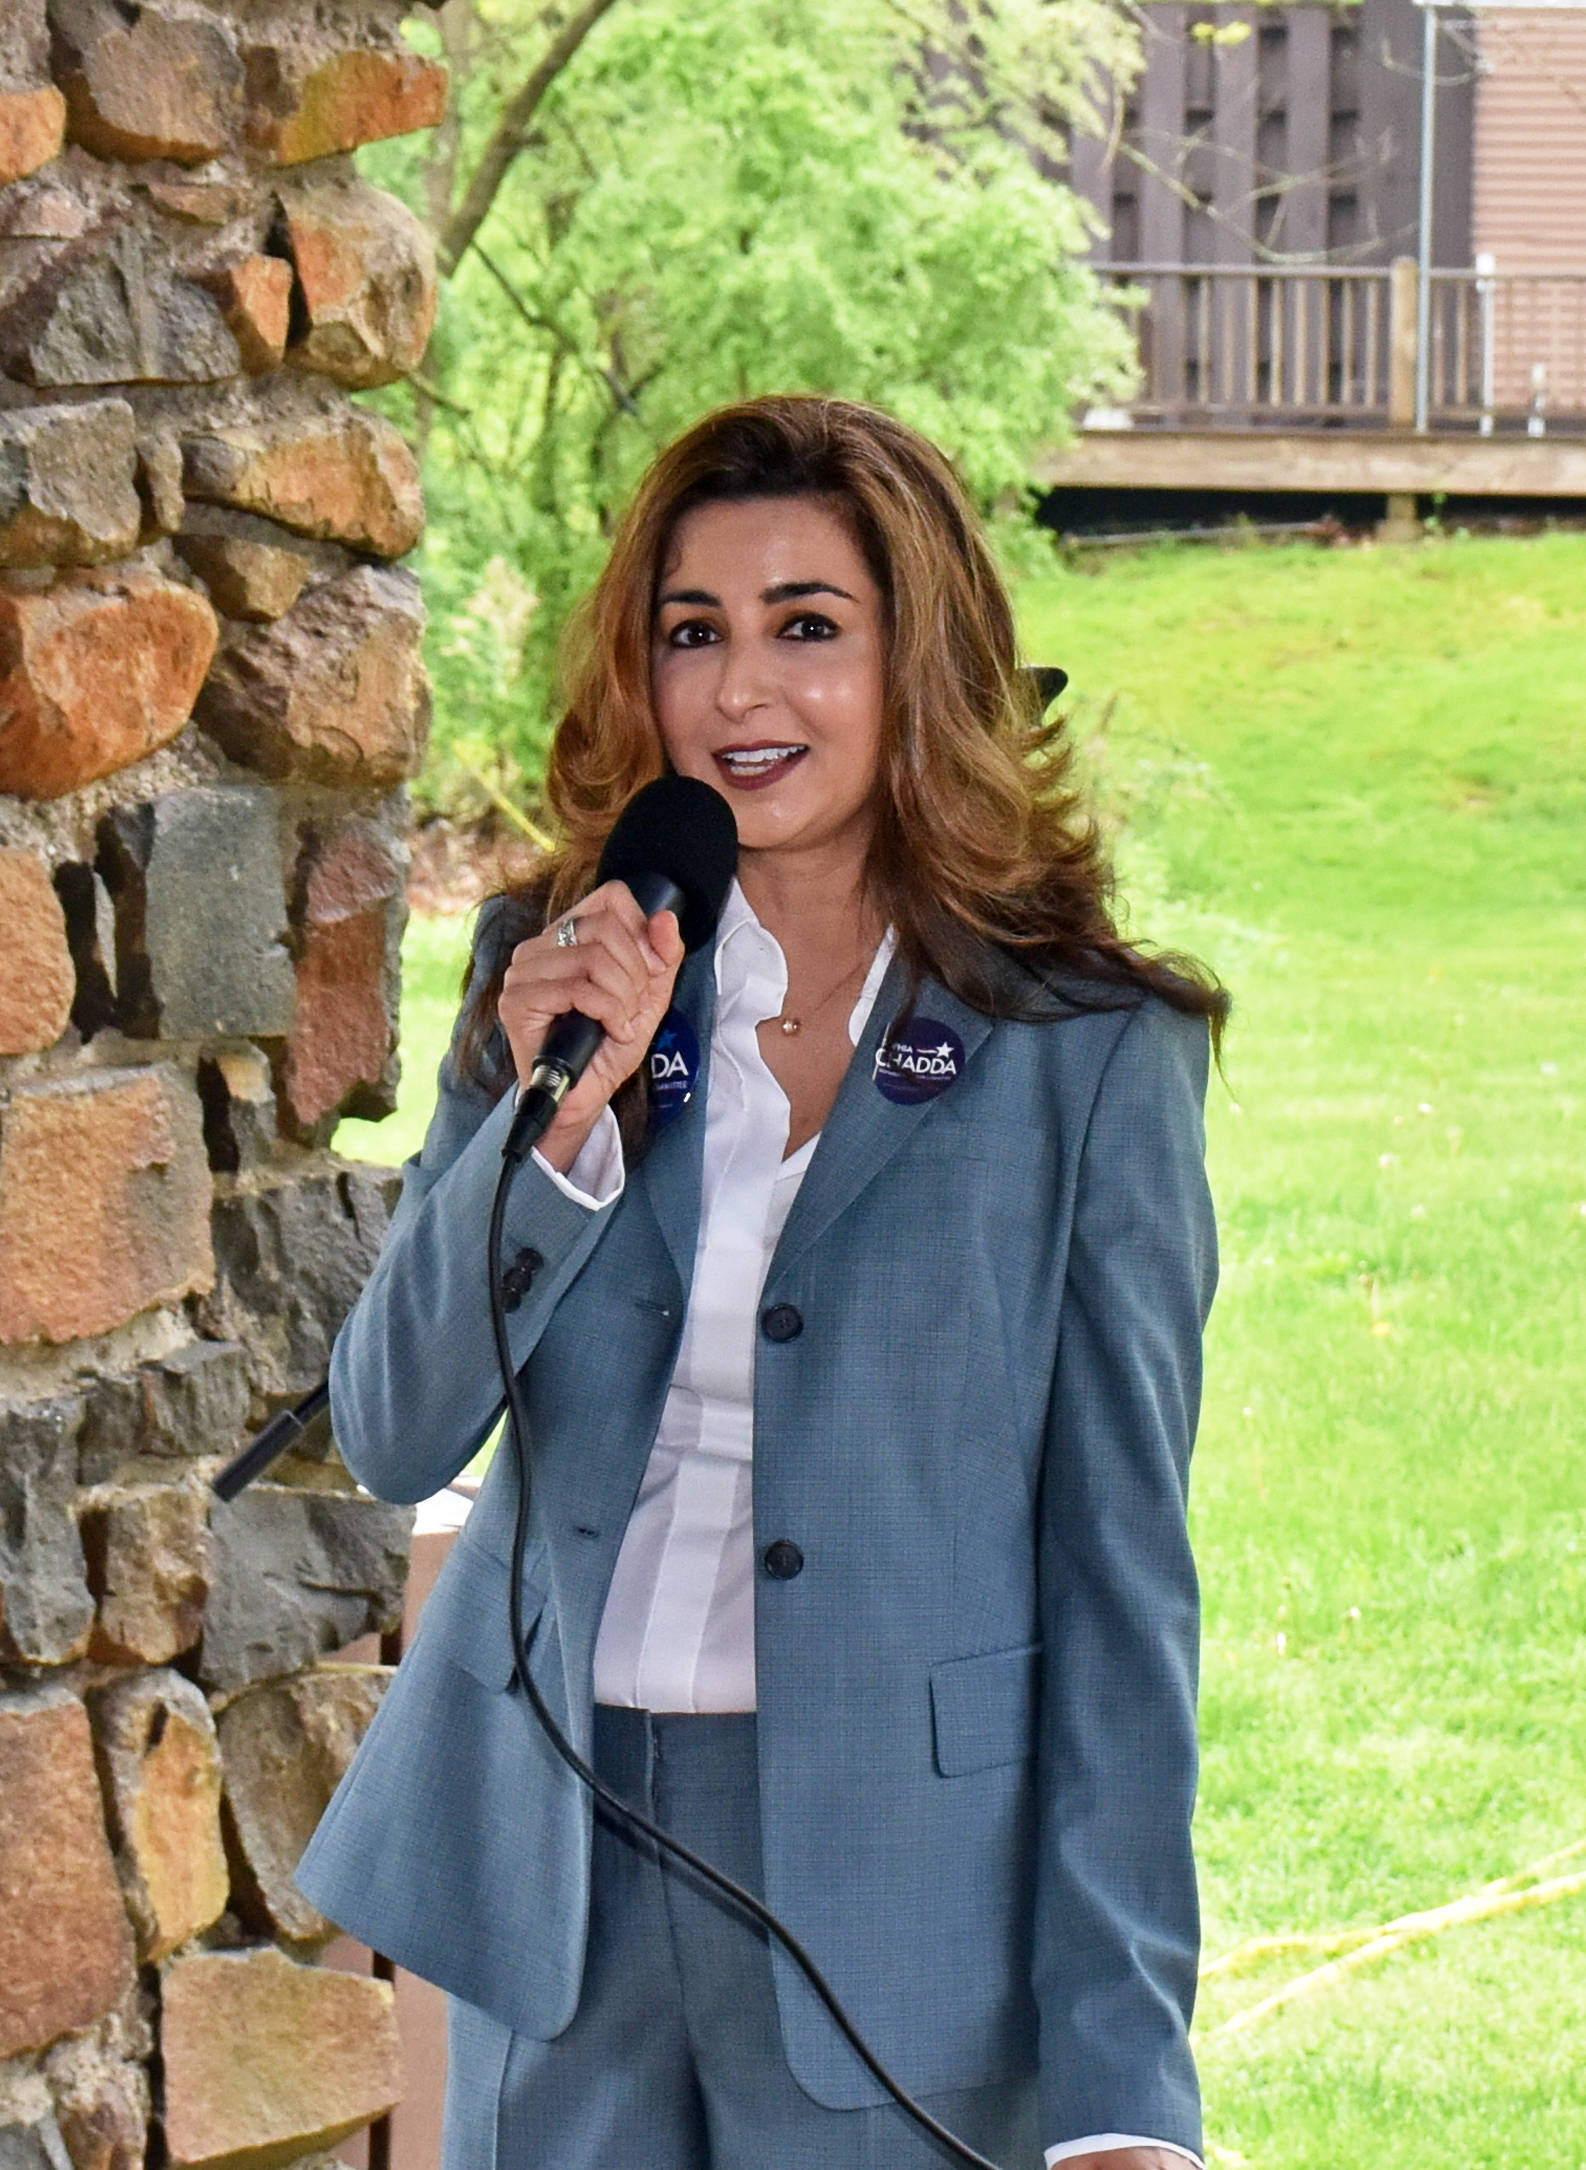 Sophia Chadda, Democratic candidate for Township Committee